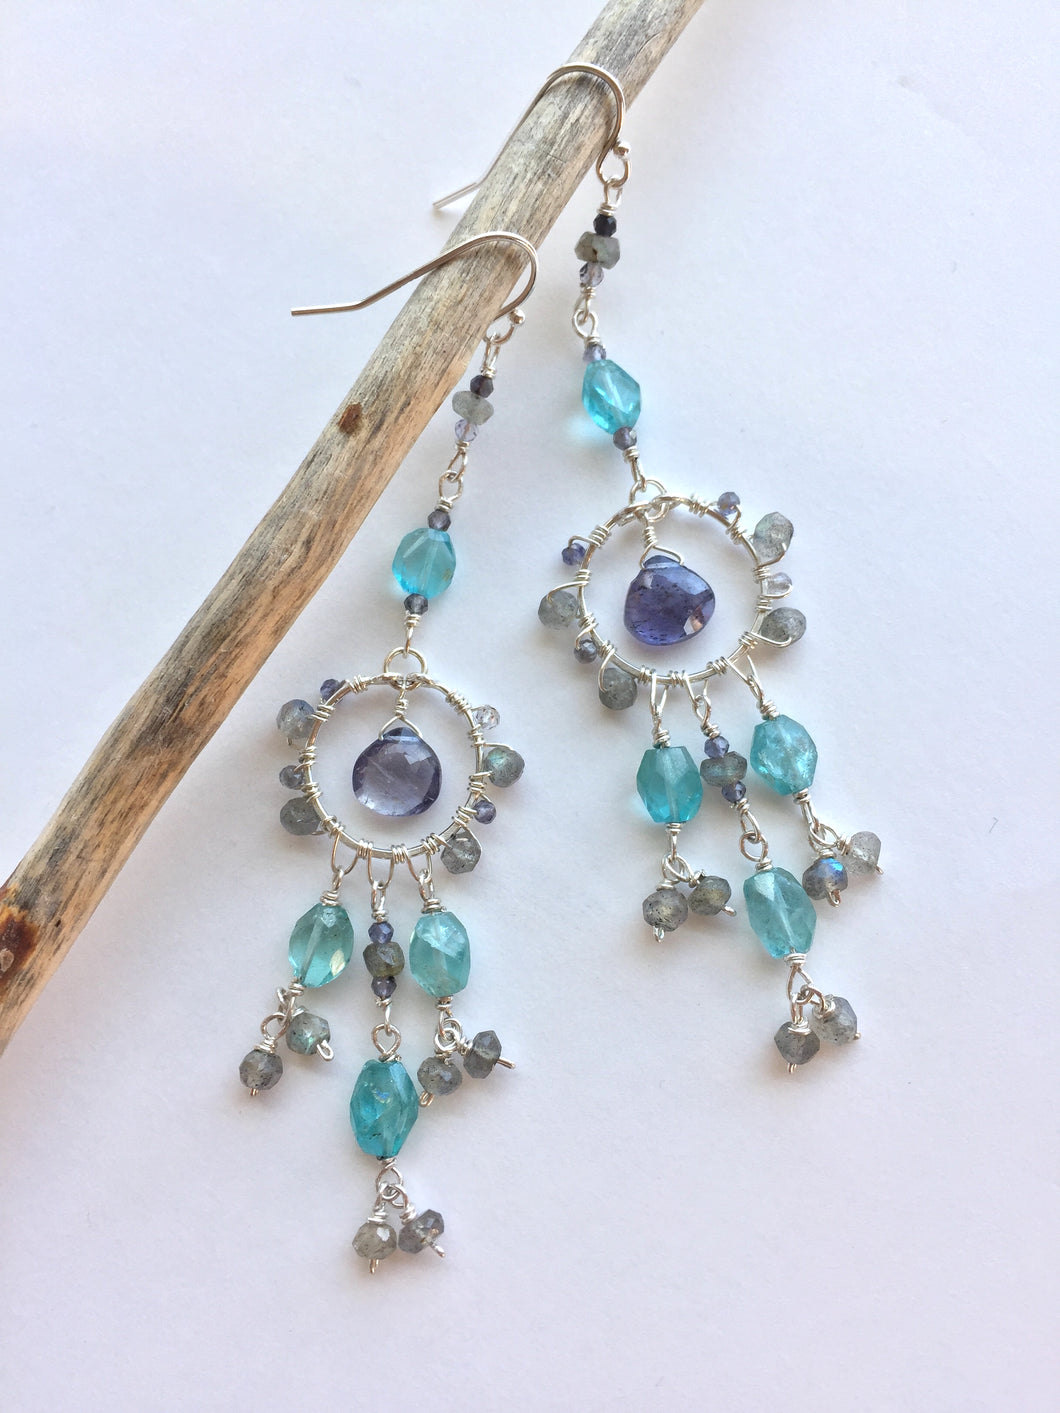 Water Goddess Earrings, hanging on stick